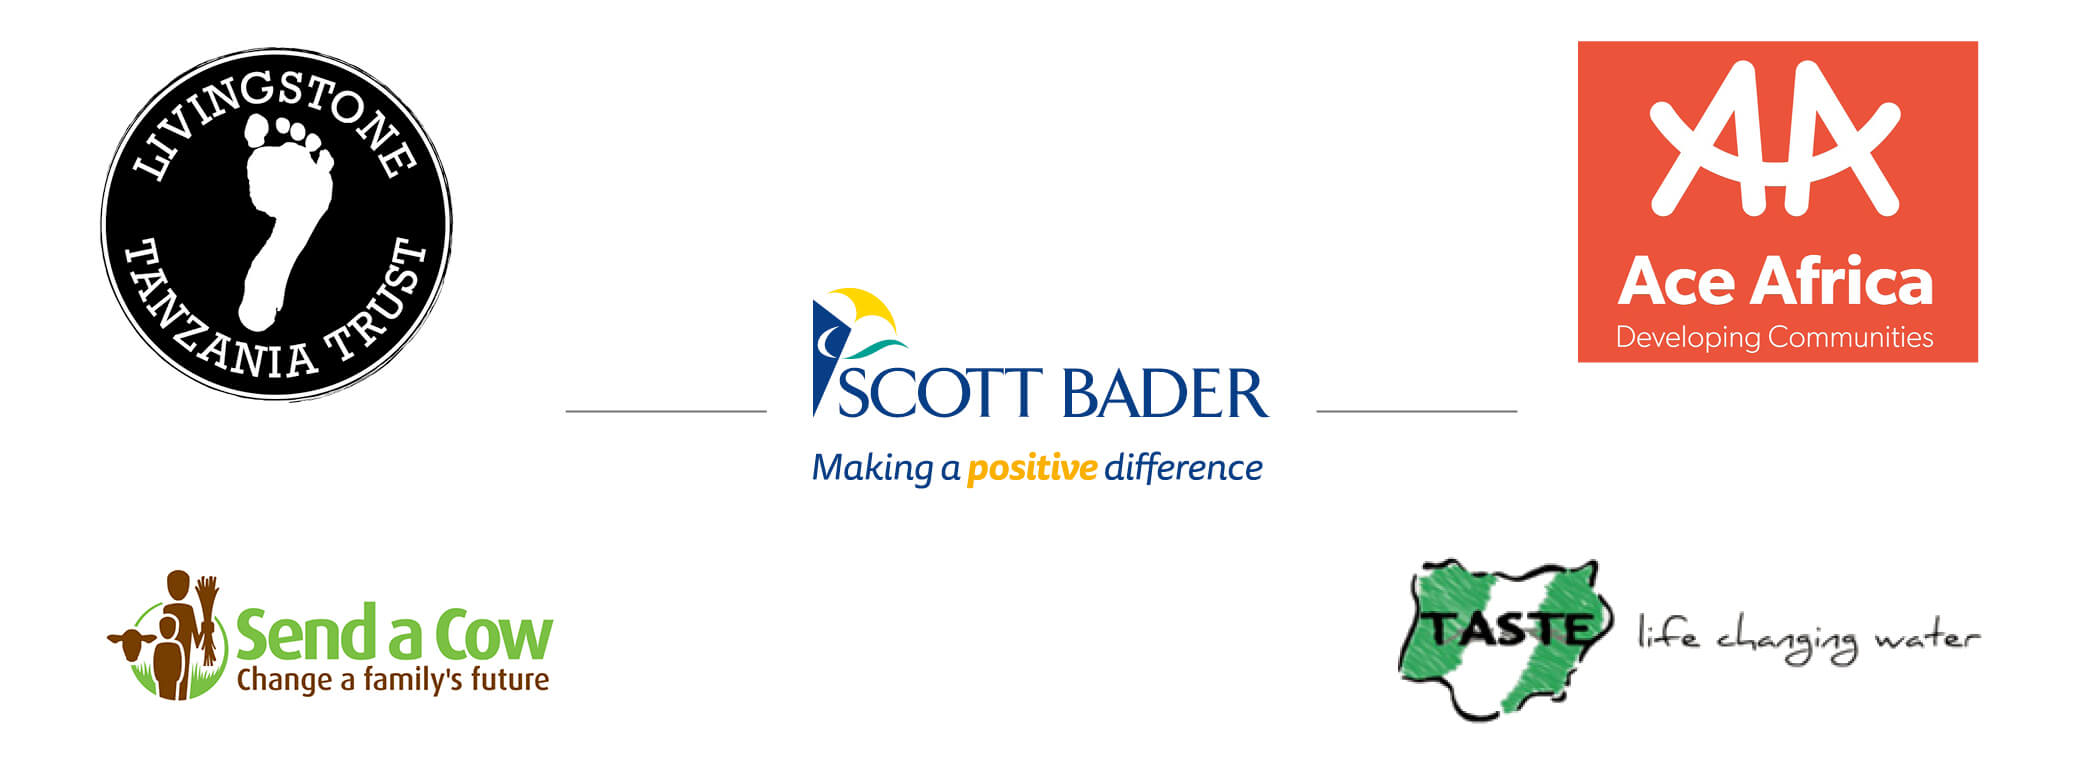 Winners of the Scott Bader Commonwealth's Charity Fund 2019